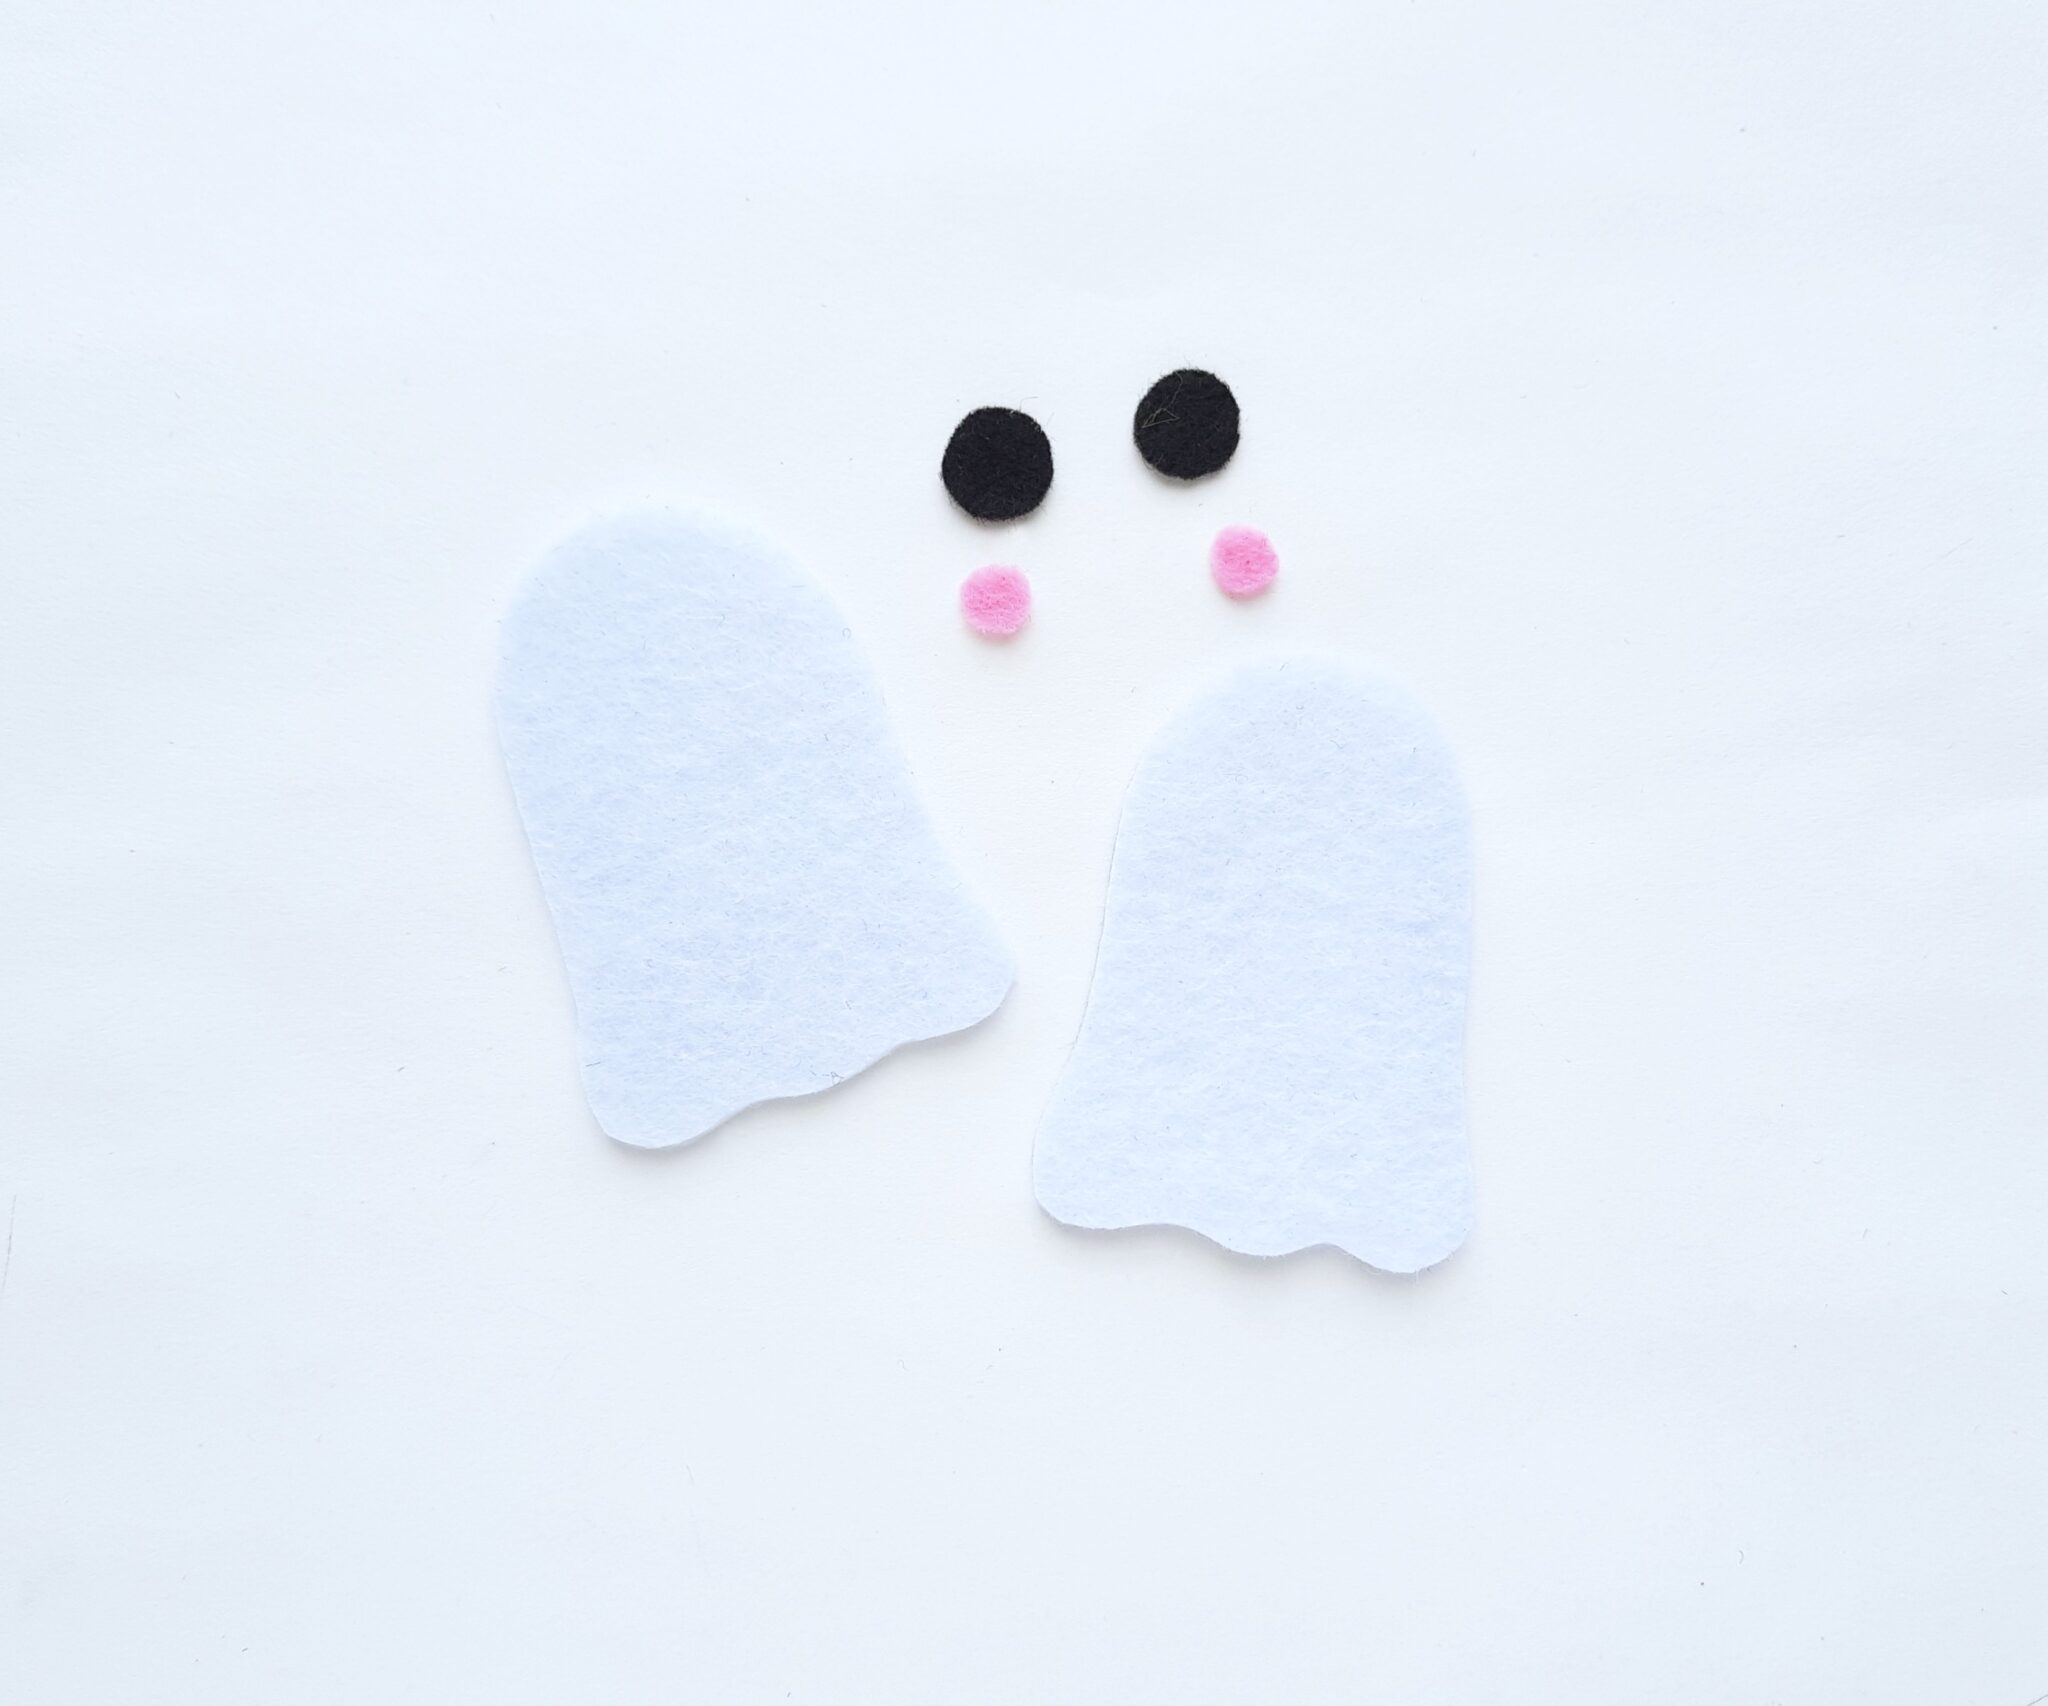 Two felt  pieces of white felt cut out in a ghost pattern, black eyes, and pink cheeks are cut out as well.